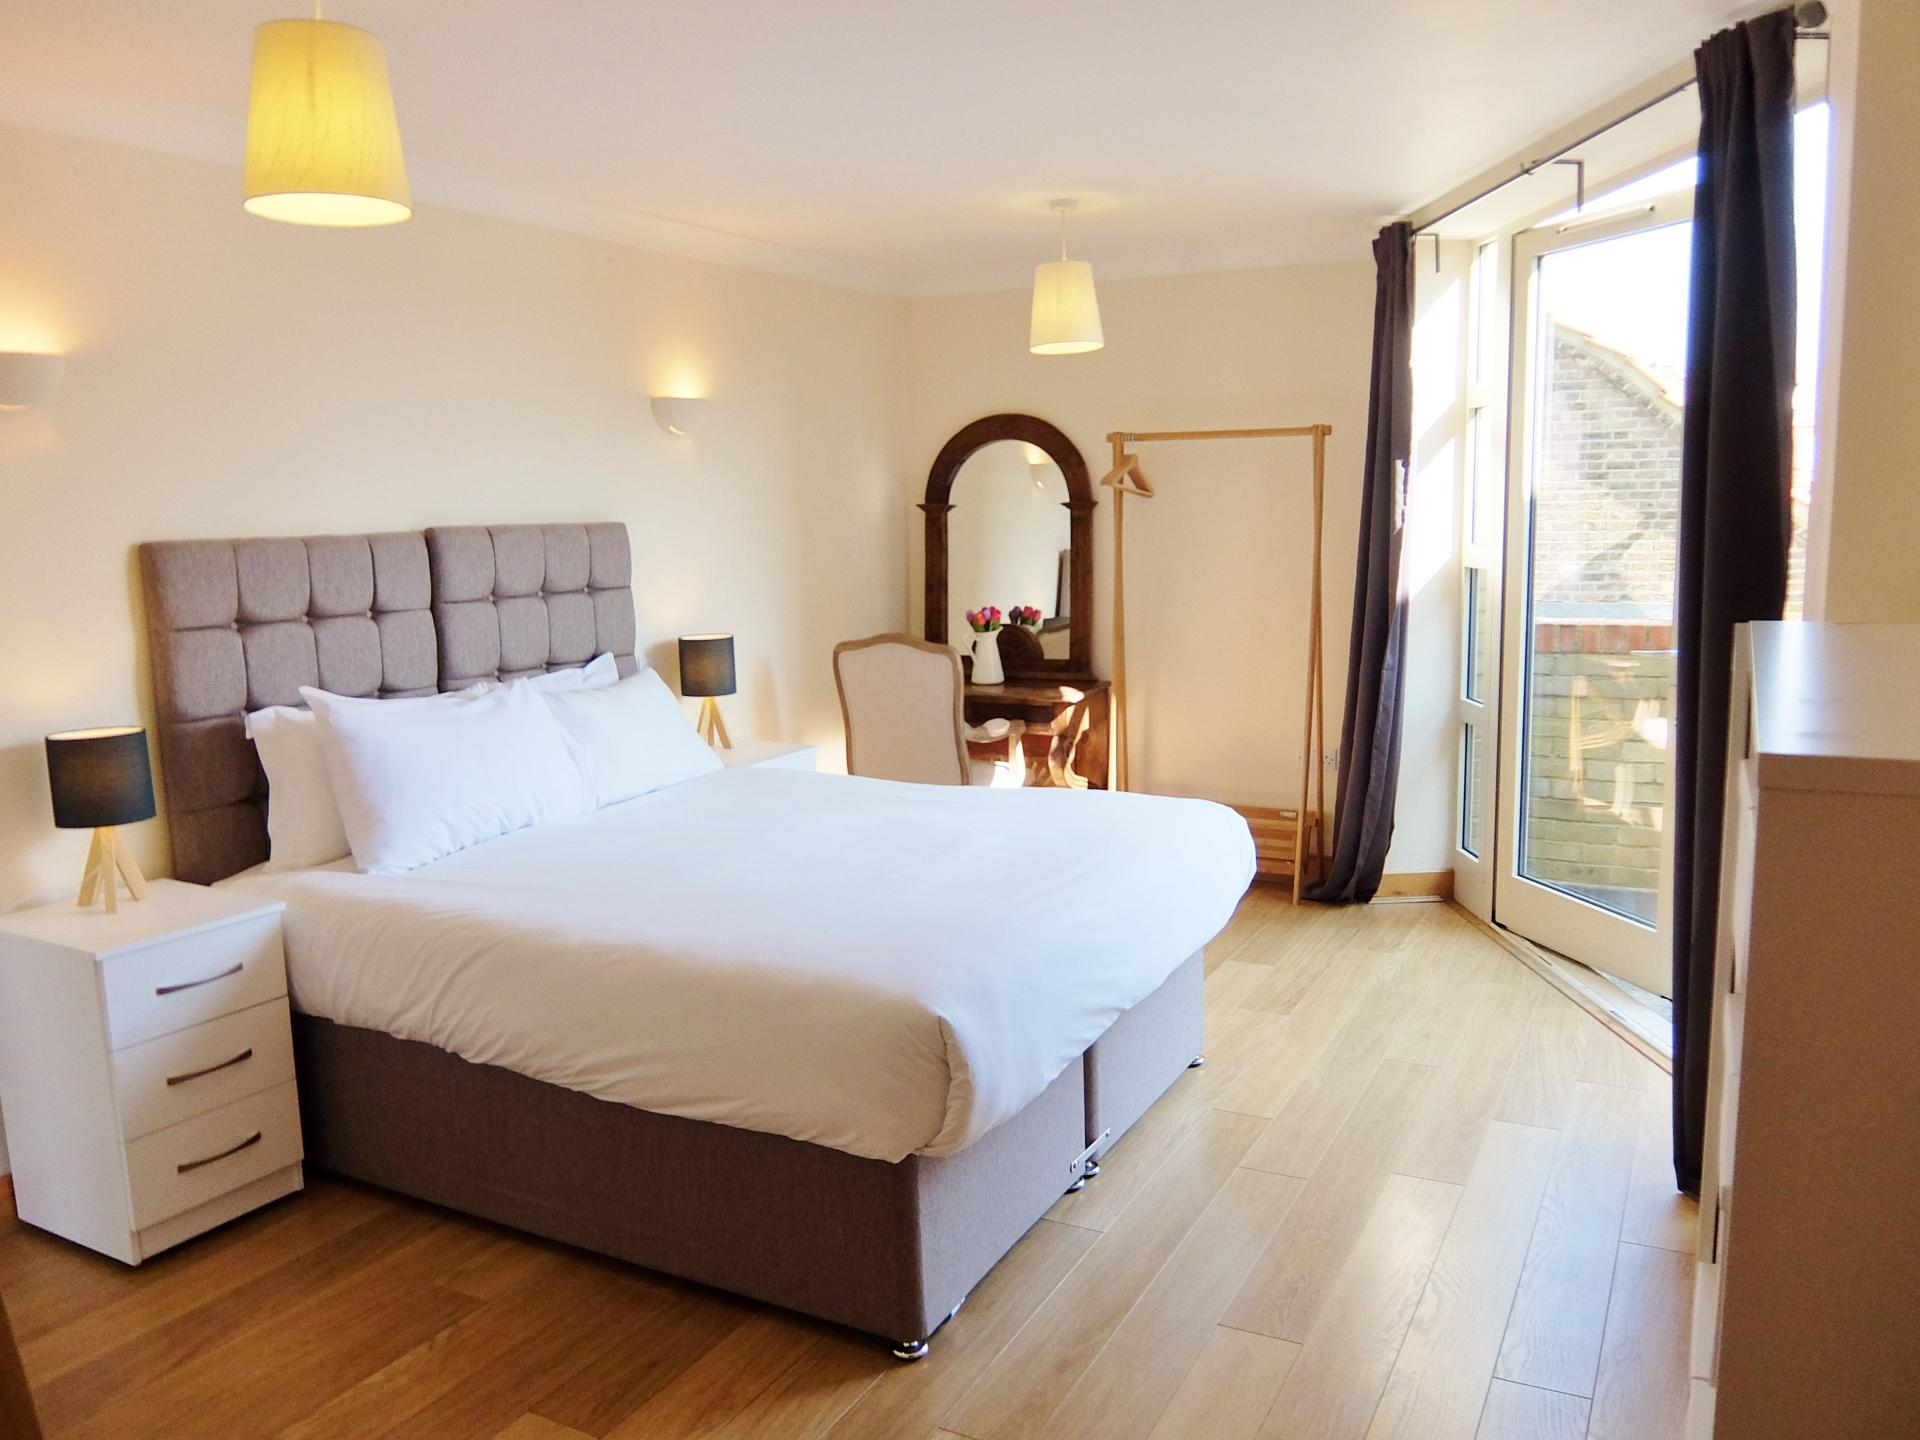 Bedroom at Hampton Court Serviced Apartments, Hampton Court, London - Citybase Apartments